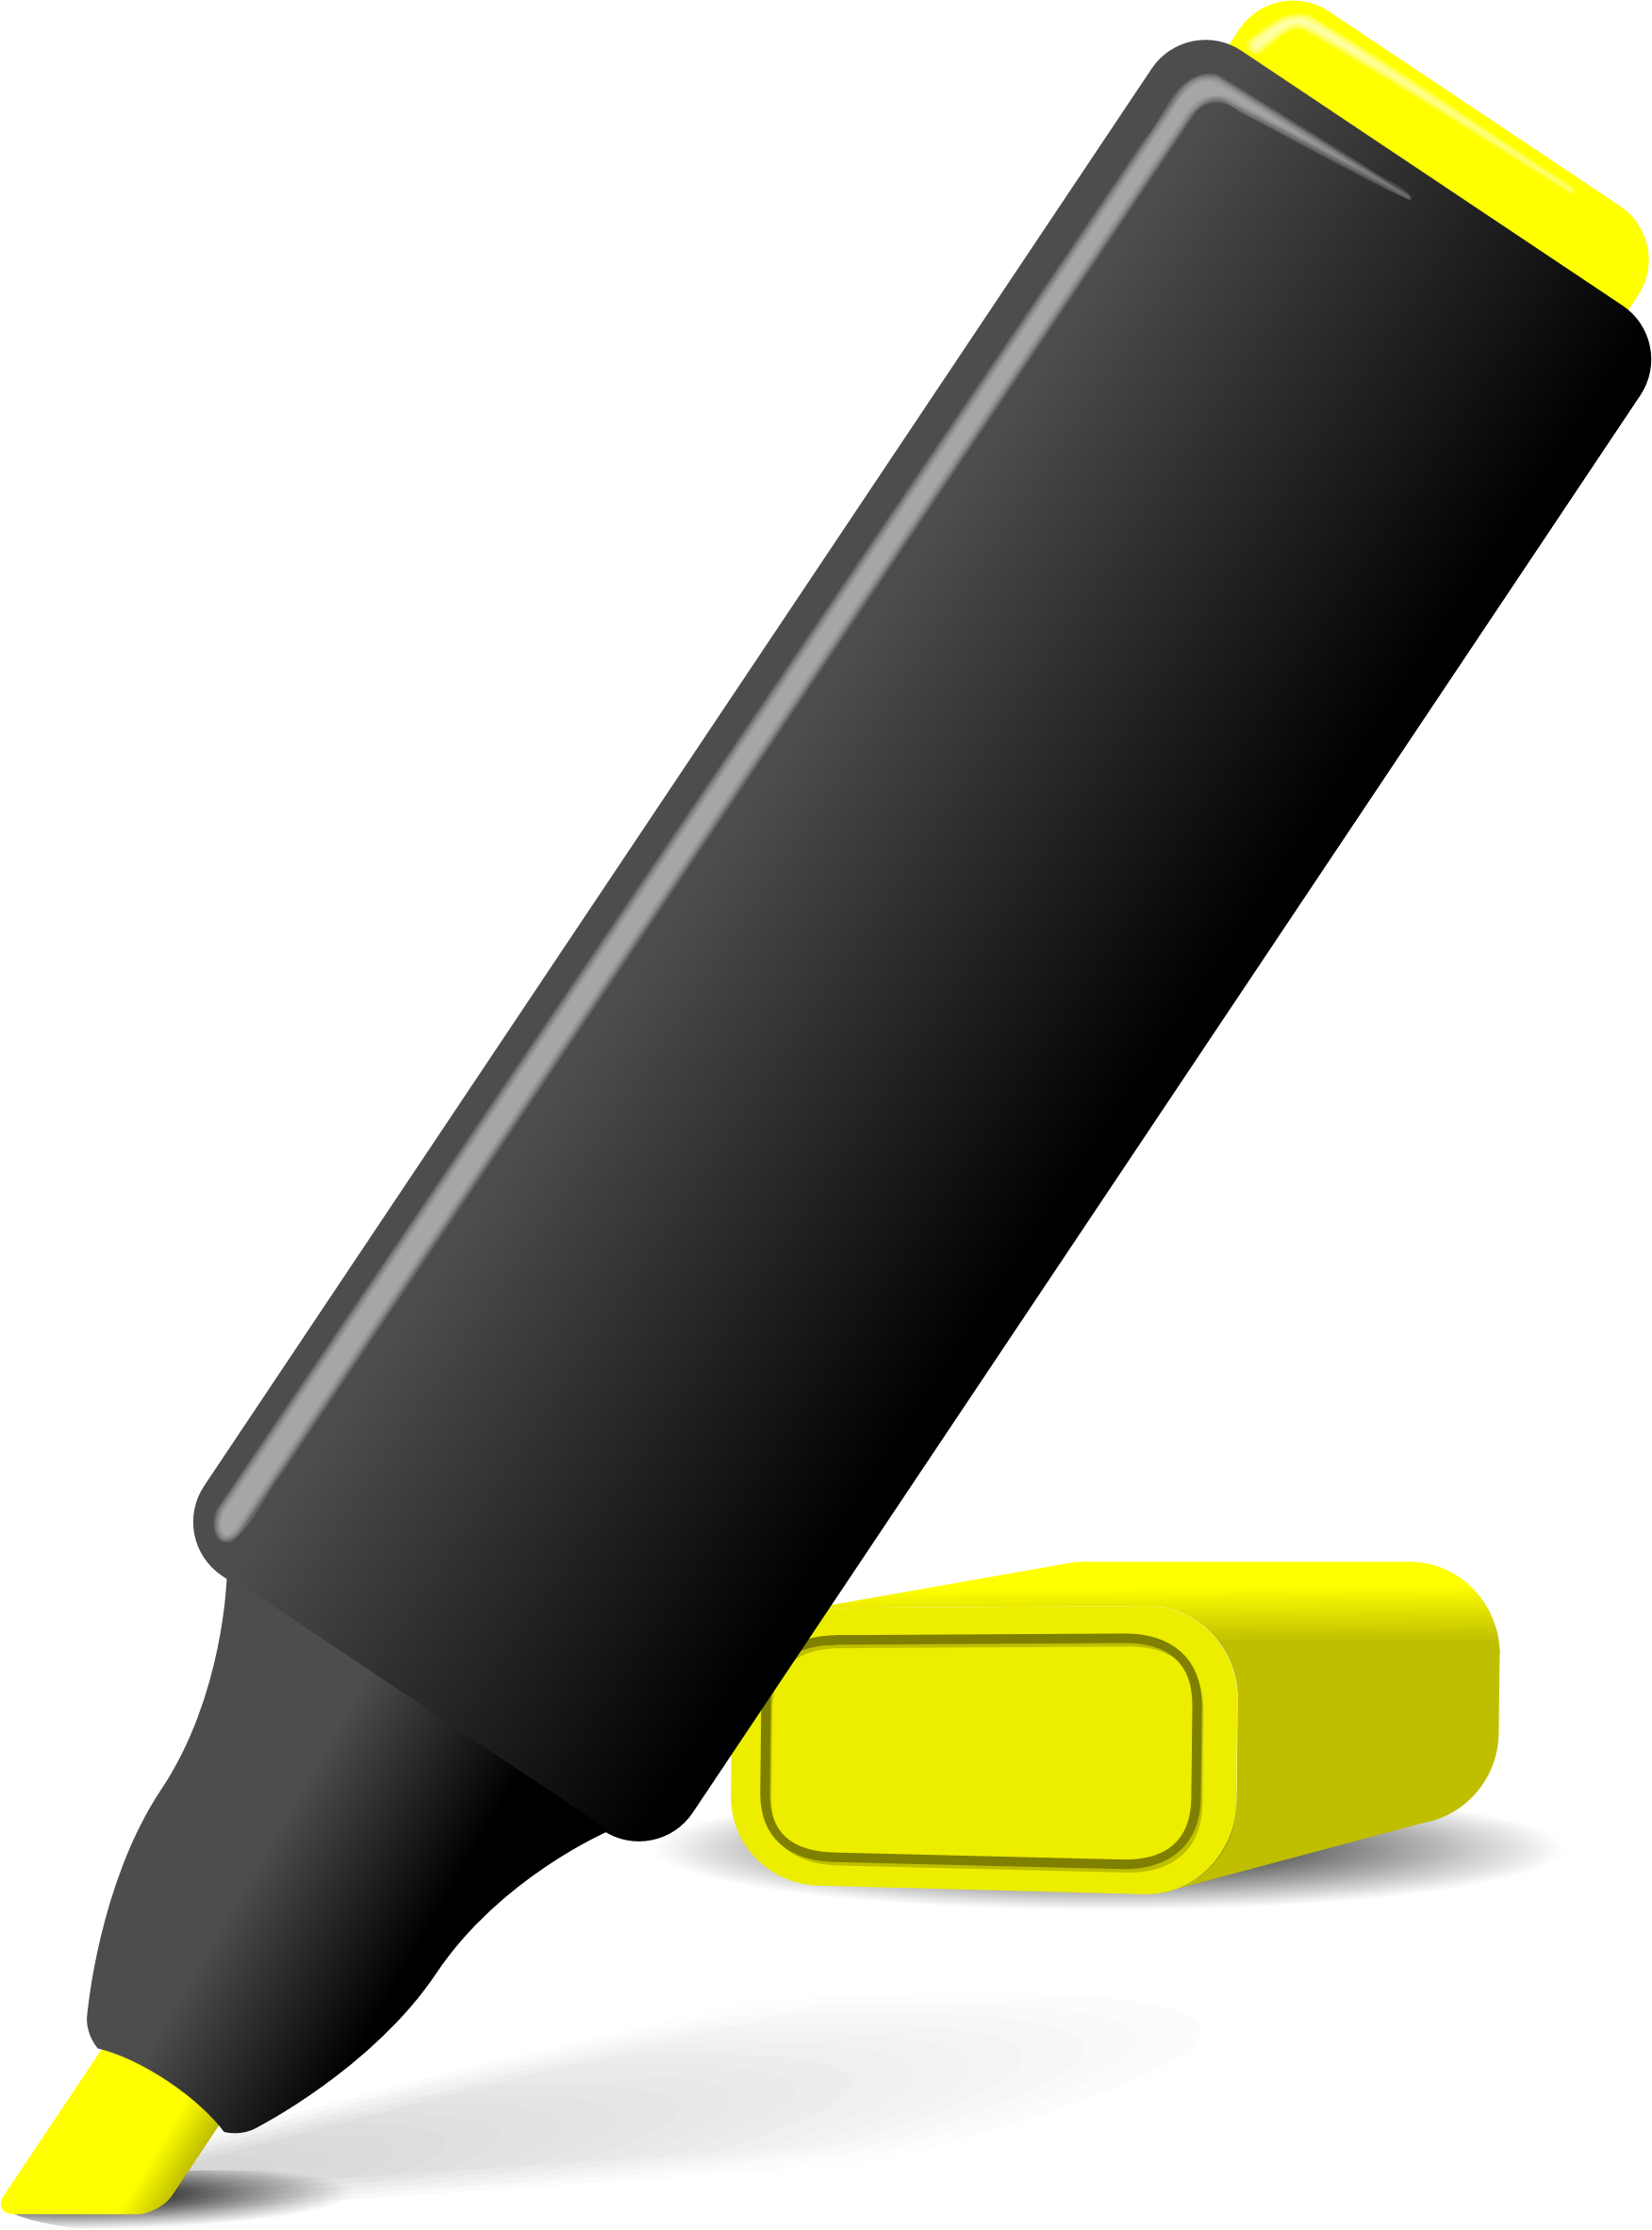 Highlighter pen big image. Markers clipart dry erase marker